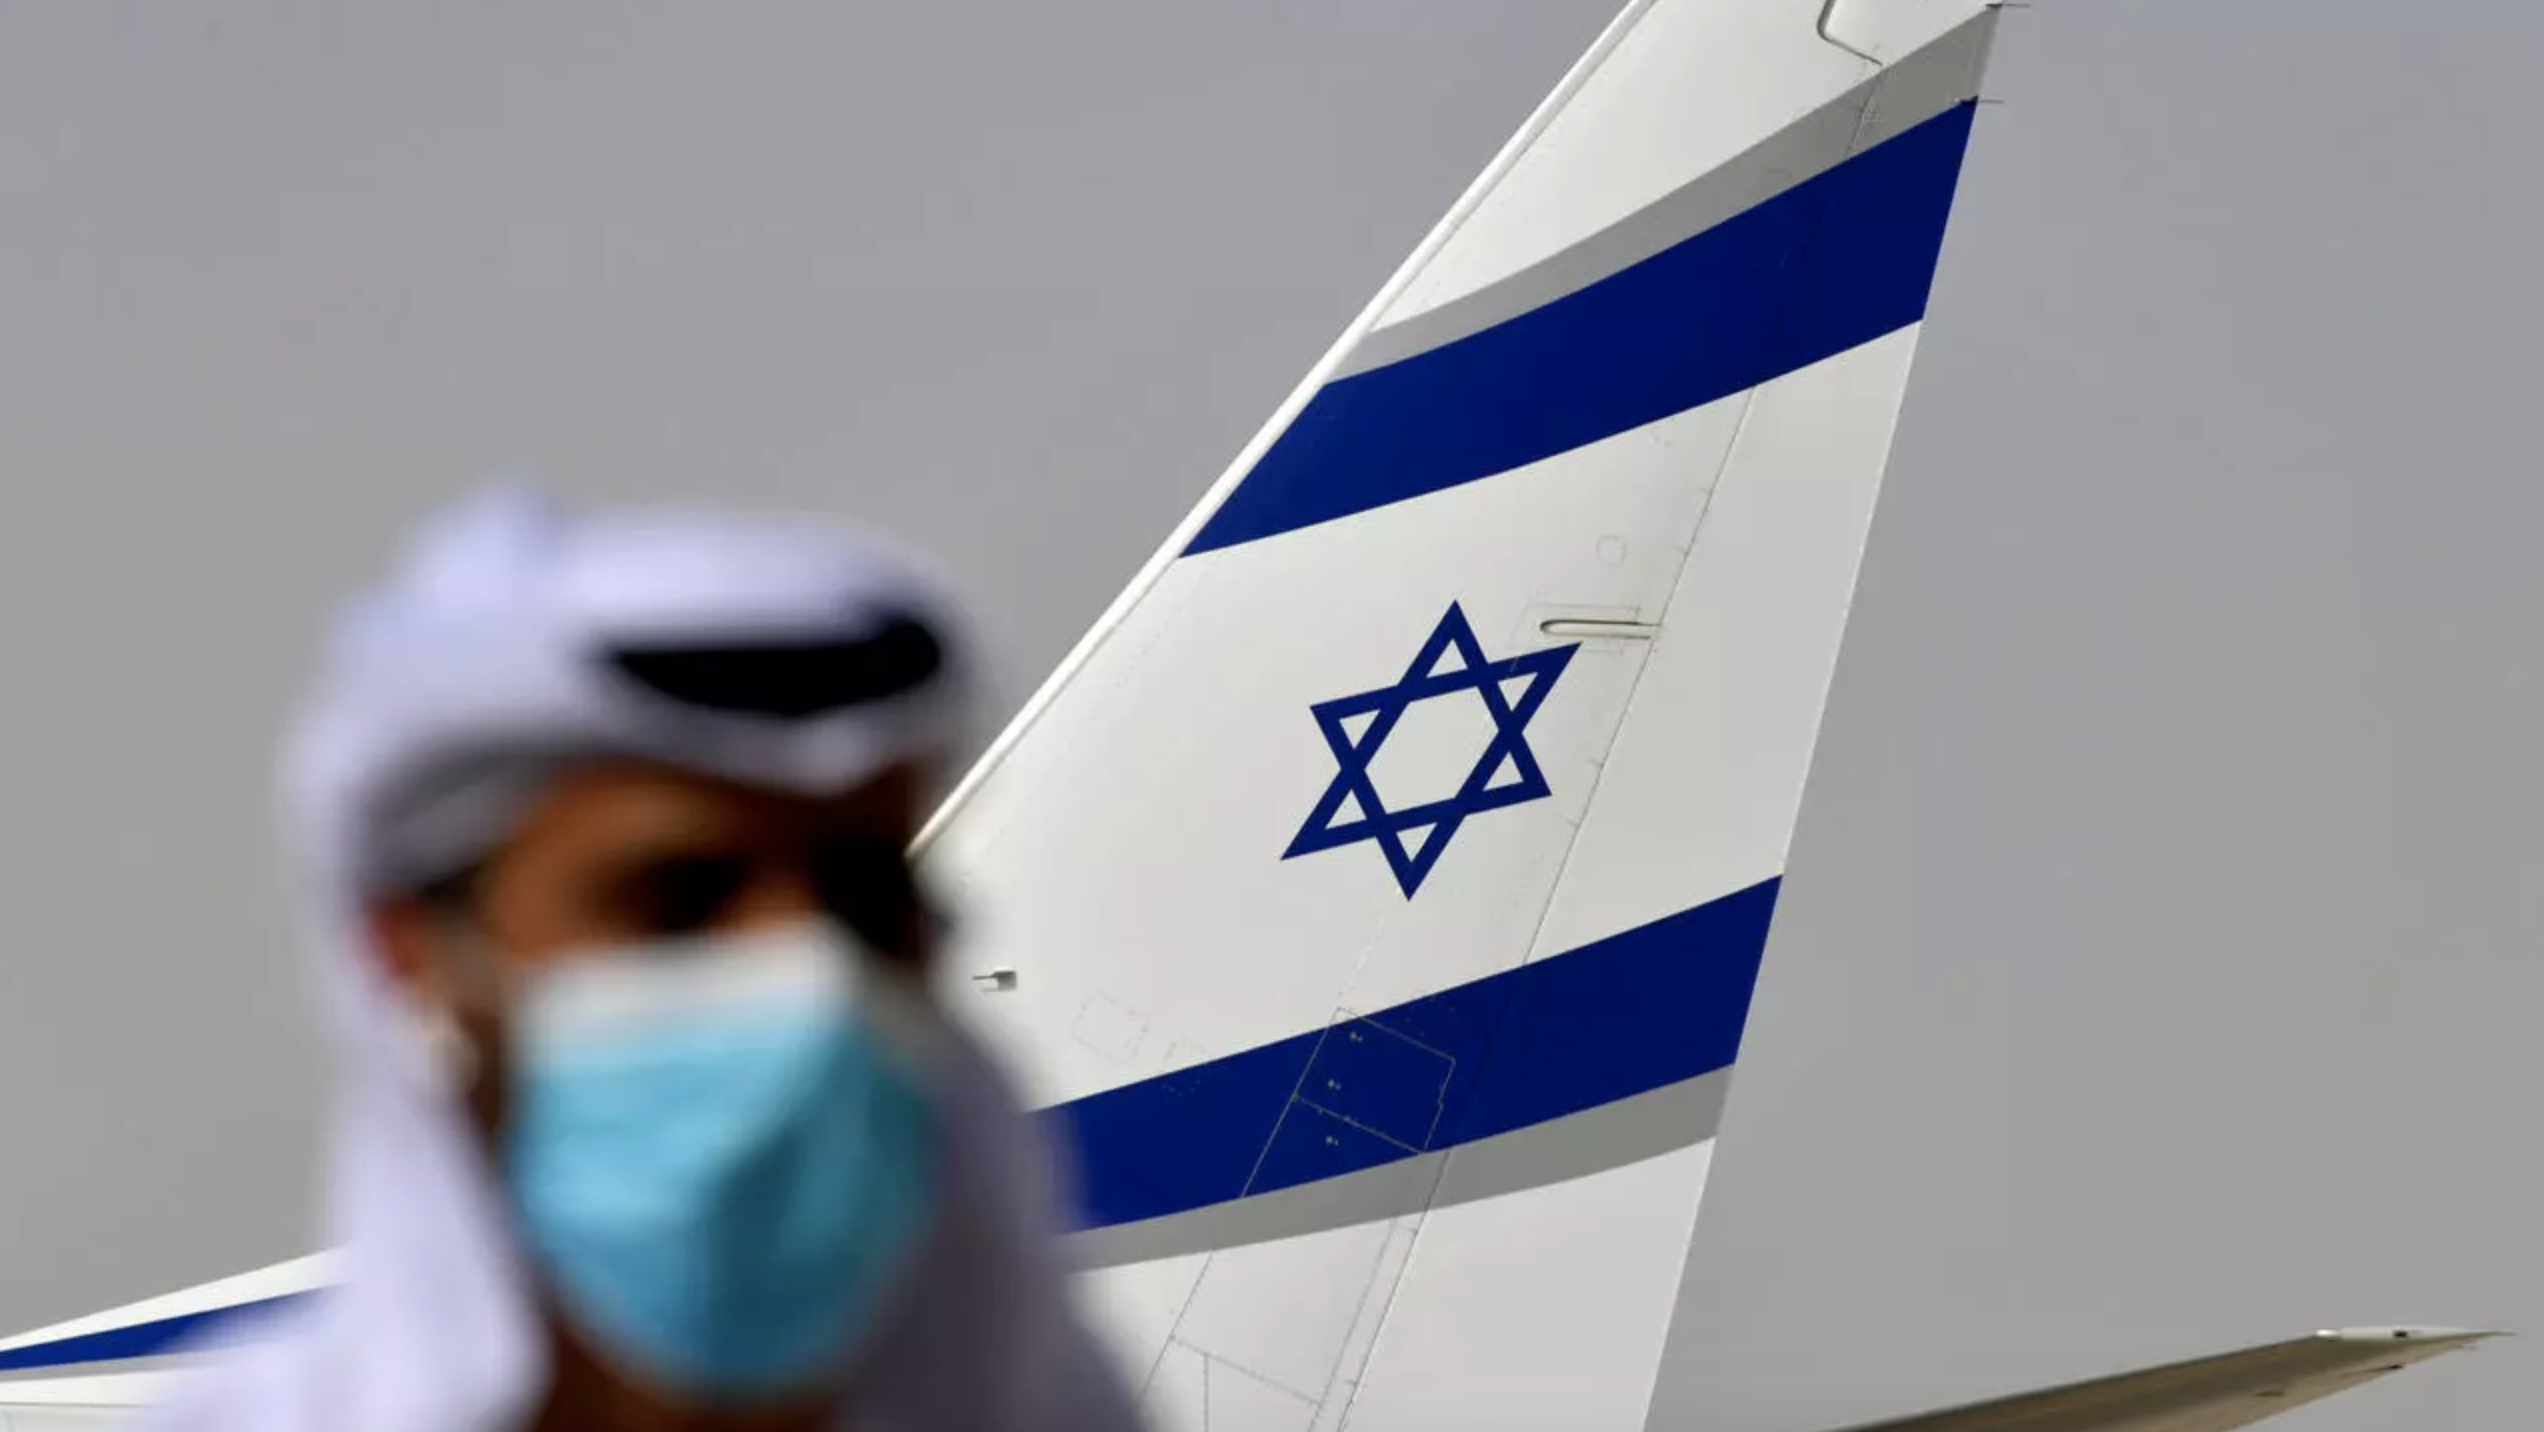 How to get an Israel overflight permit